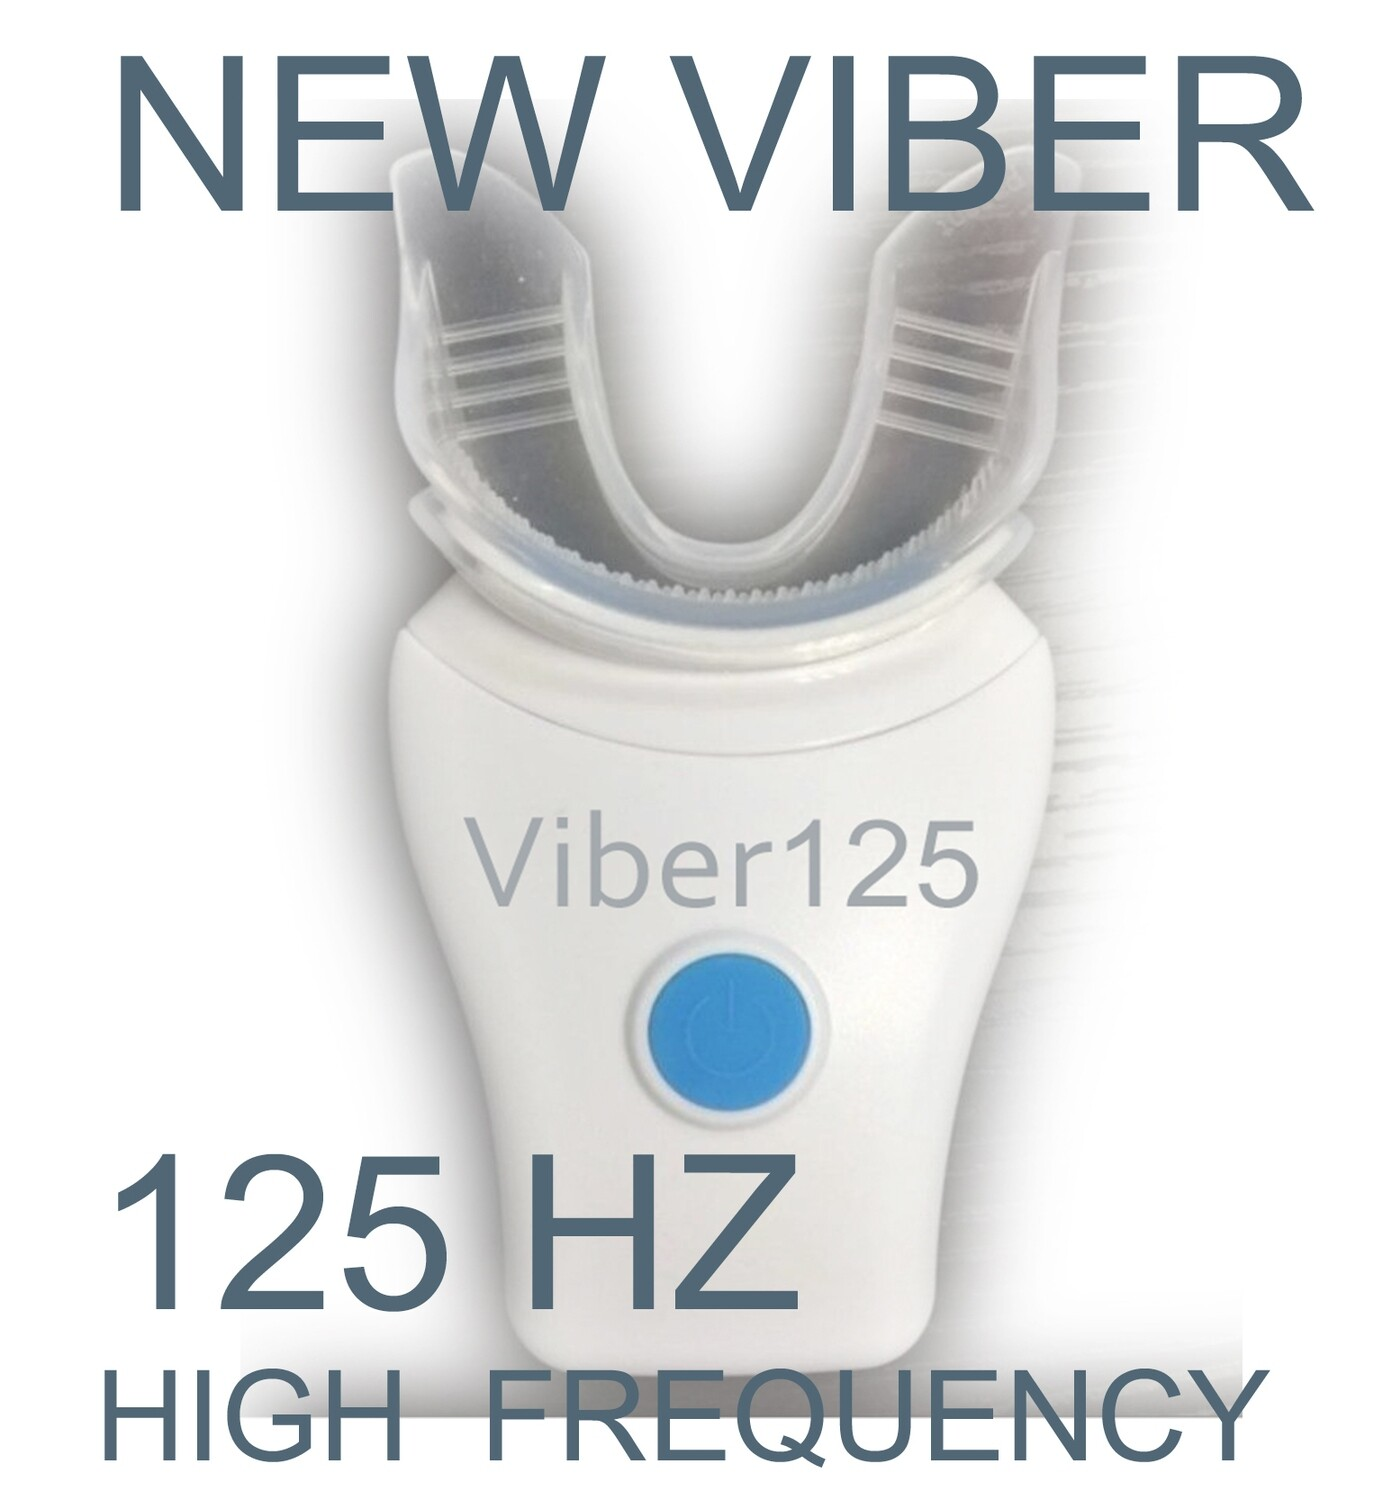 Viber125 High Frequency 5 minutes per day